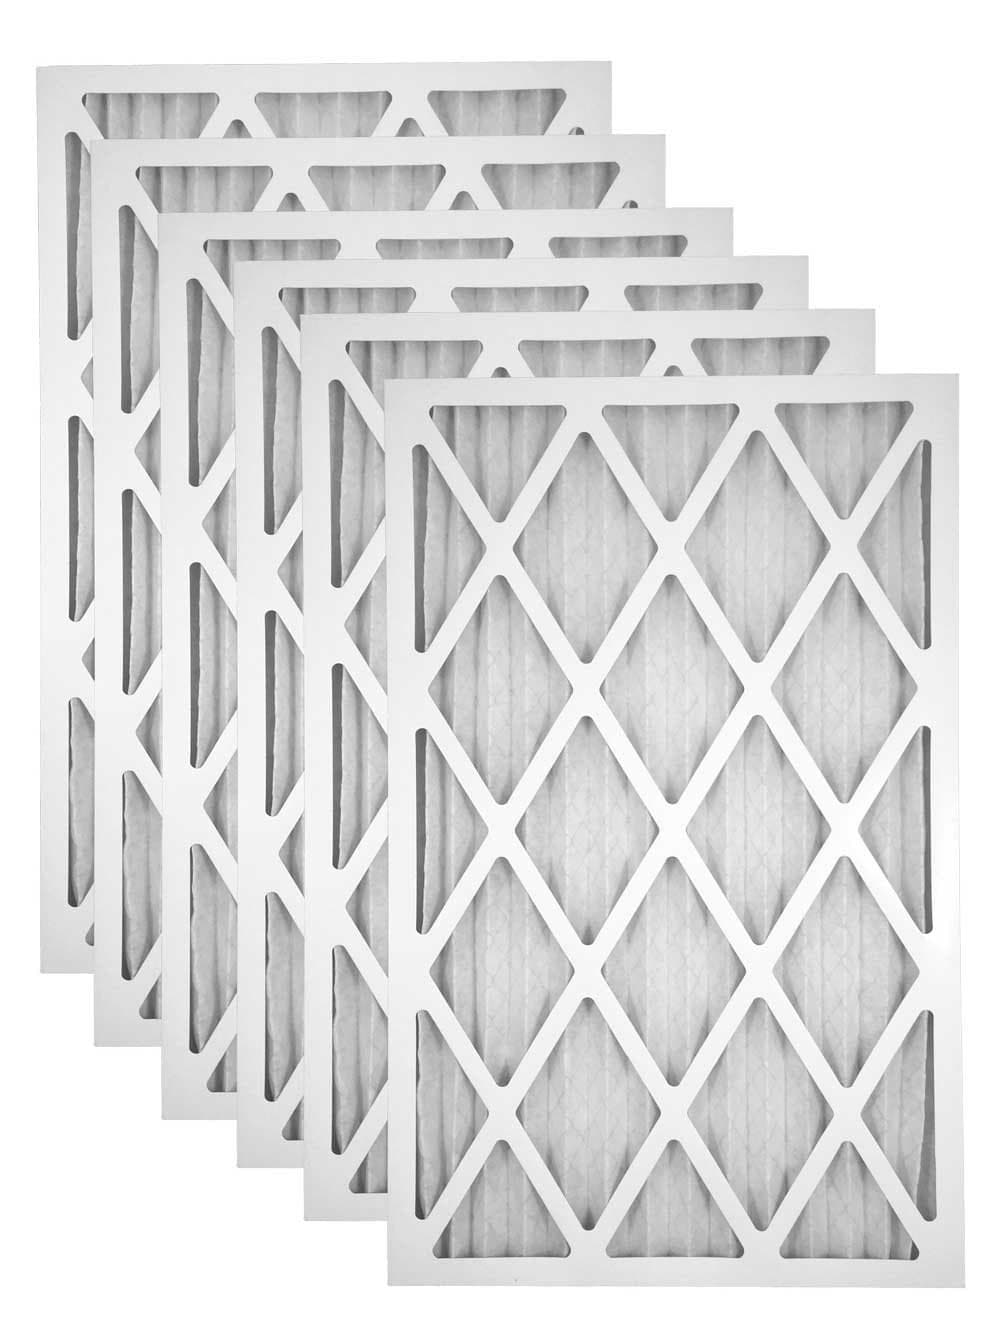 10x30x1 Merv 8 AC Furnace Filter - Case of 6